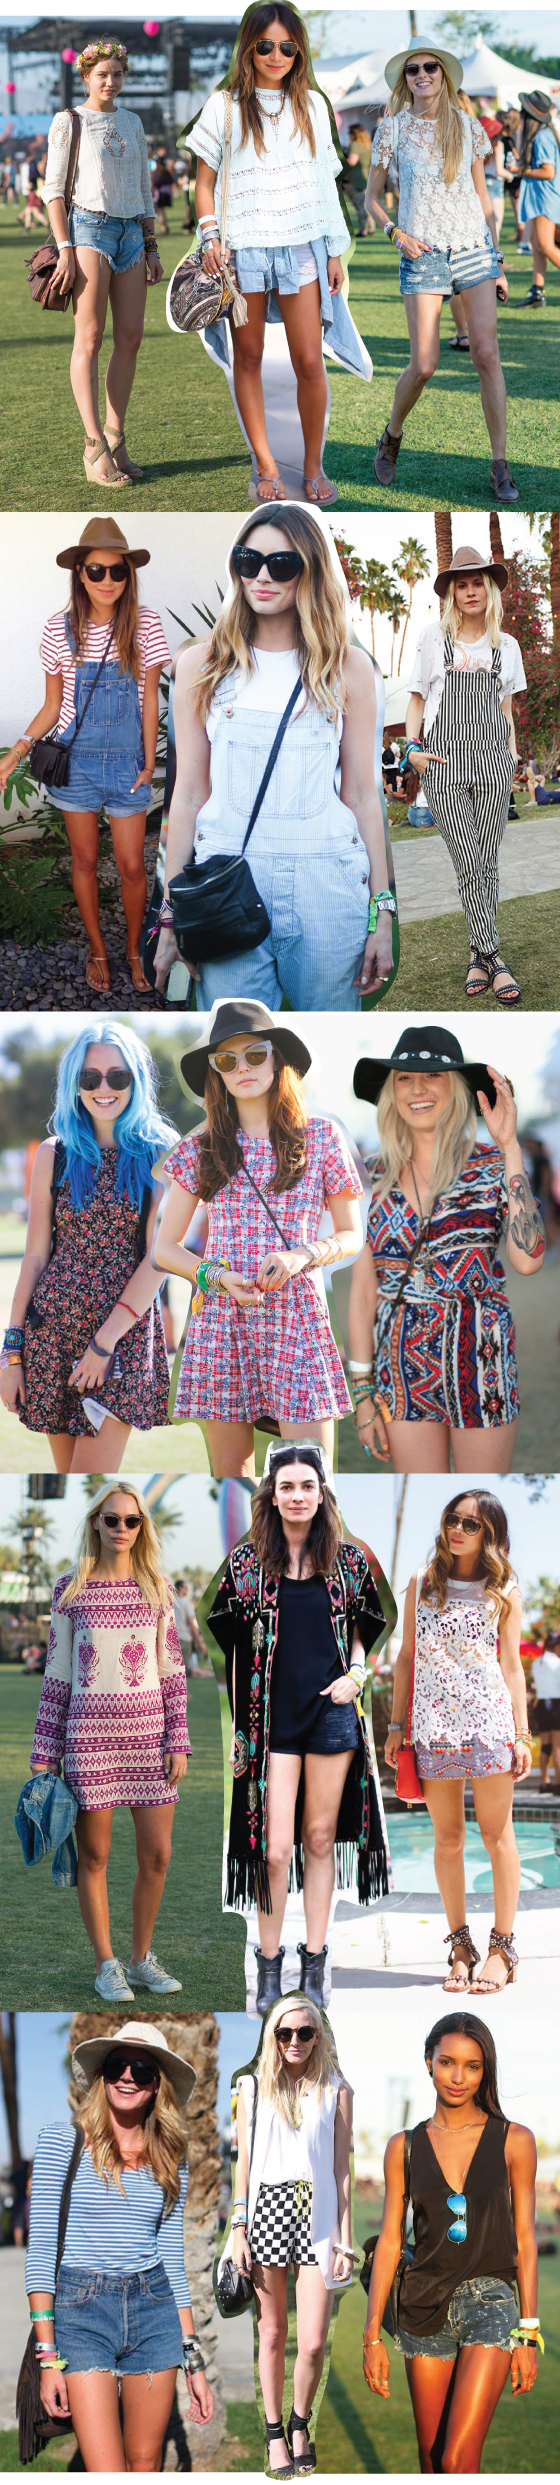 coachella-street-style-2014-looks-outfits-cool-normal-prints-jeans-white-looks-ideias-inspiracao-sem-montacao-dresses-dress-vestidos-chapeu-oculos-escuros